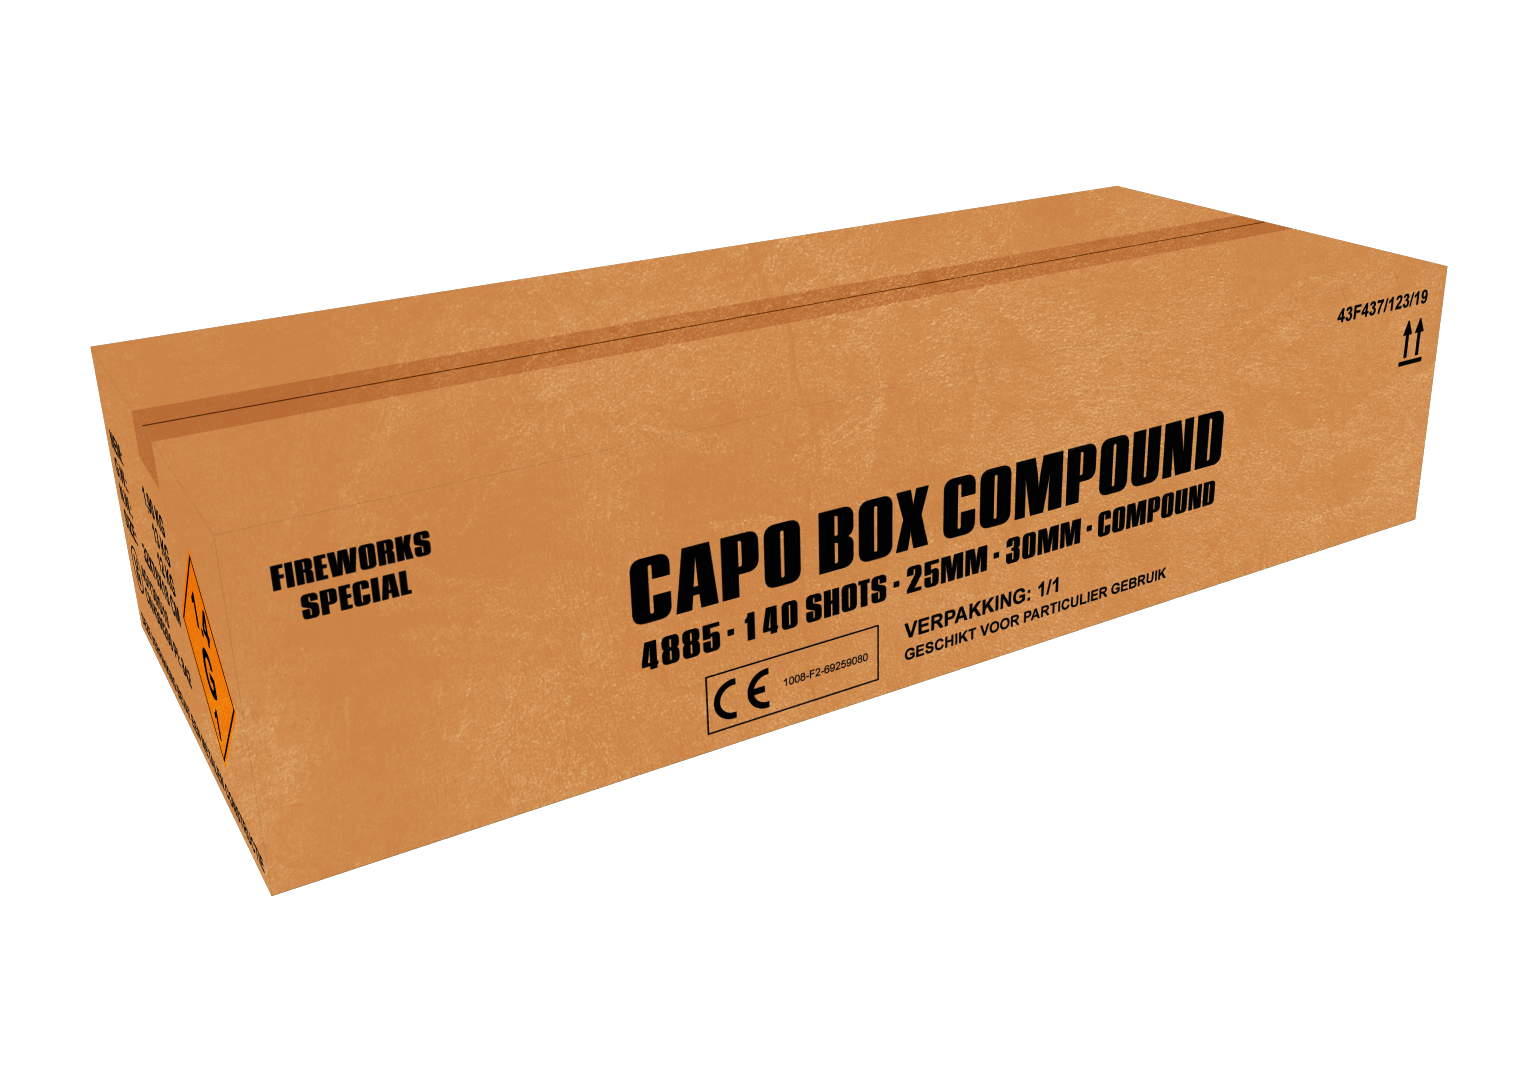 ART. 4885 CAPO BOX, 140 SHOTS WAAIERBOX COMPOUND NIEUW!